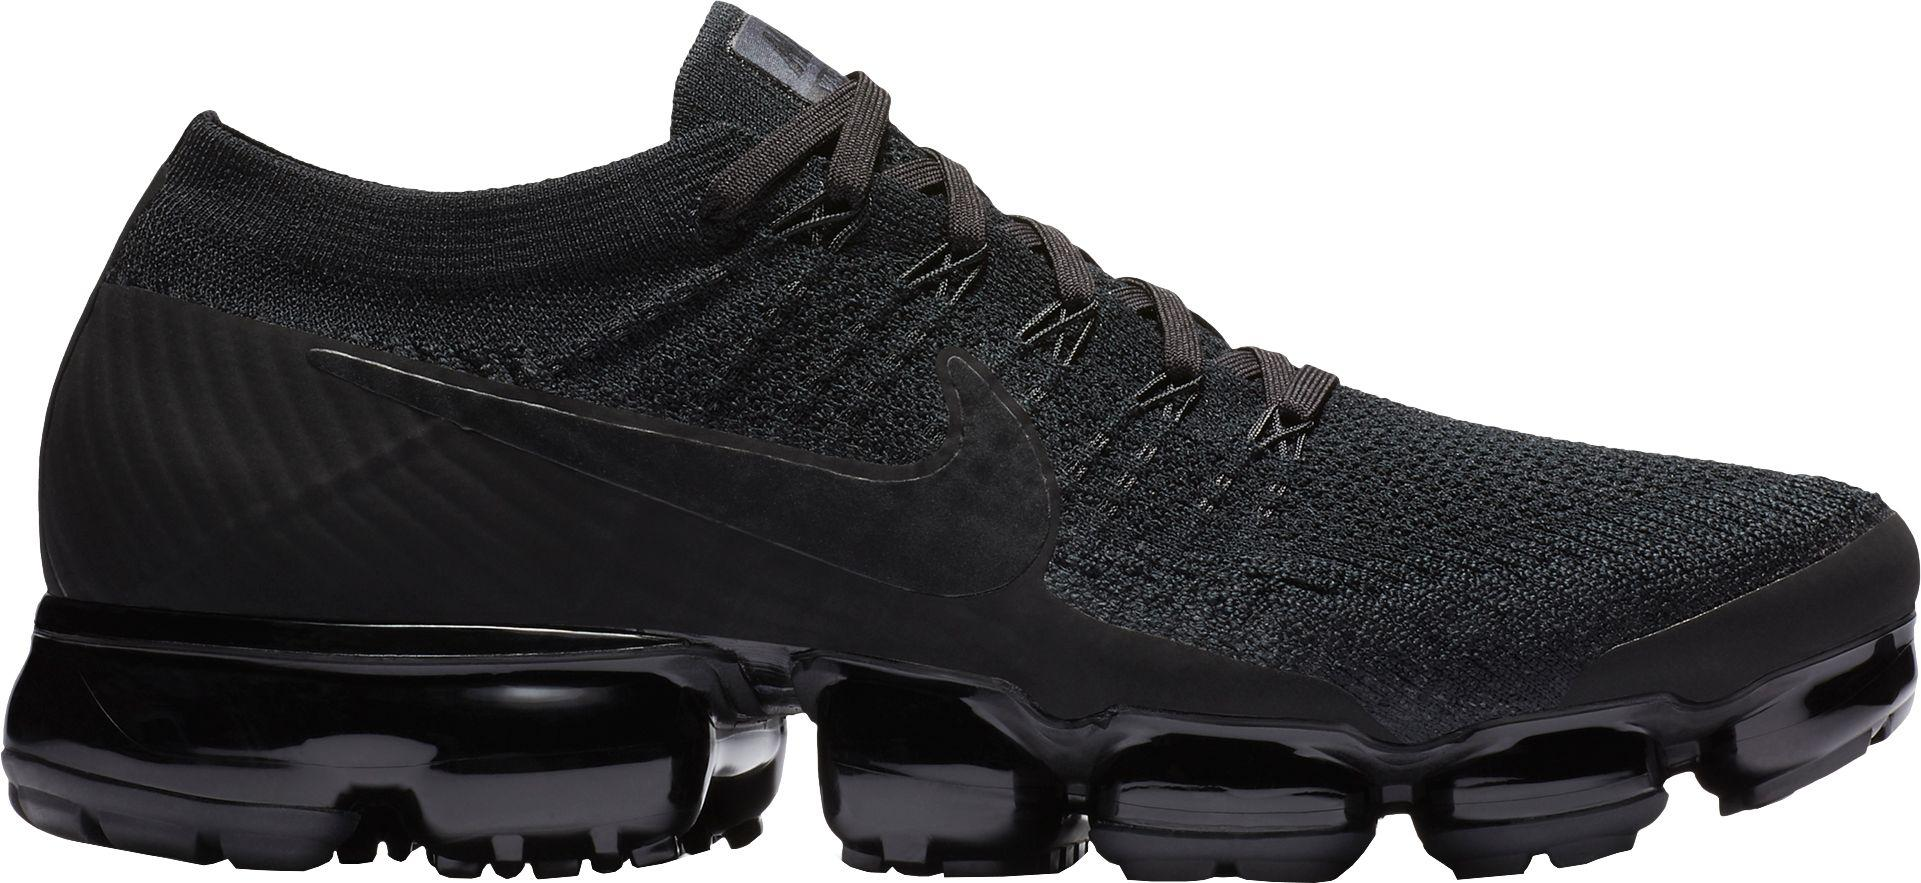 buy popular 07f68 3a6aa Nike Black Air Vapormax Flyknit Running Shoes for men